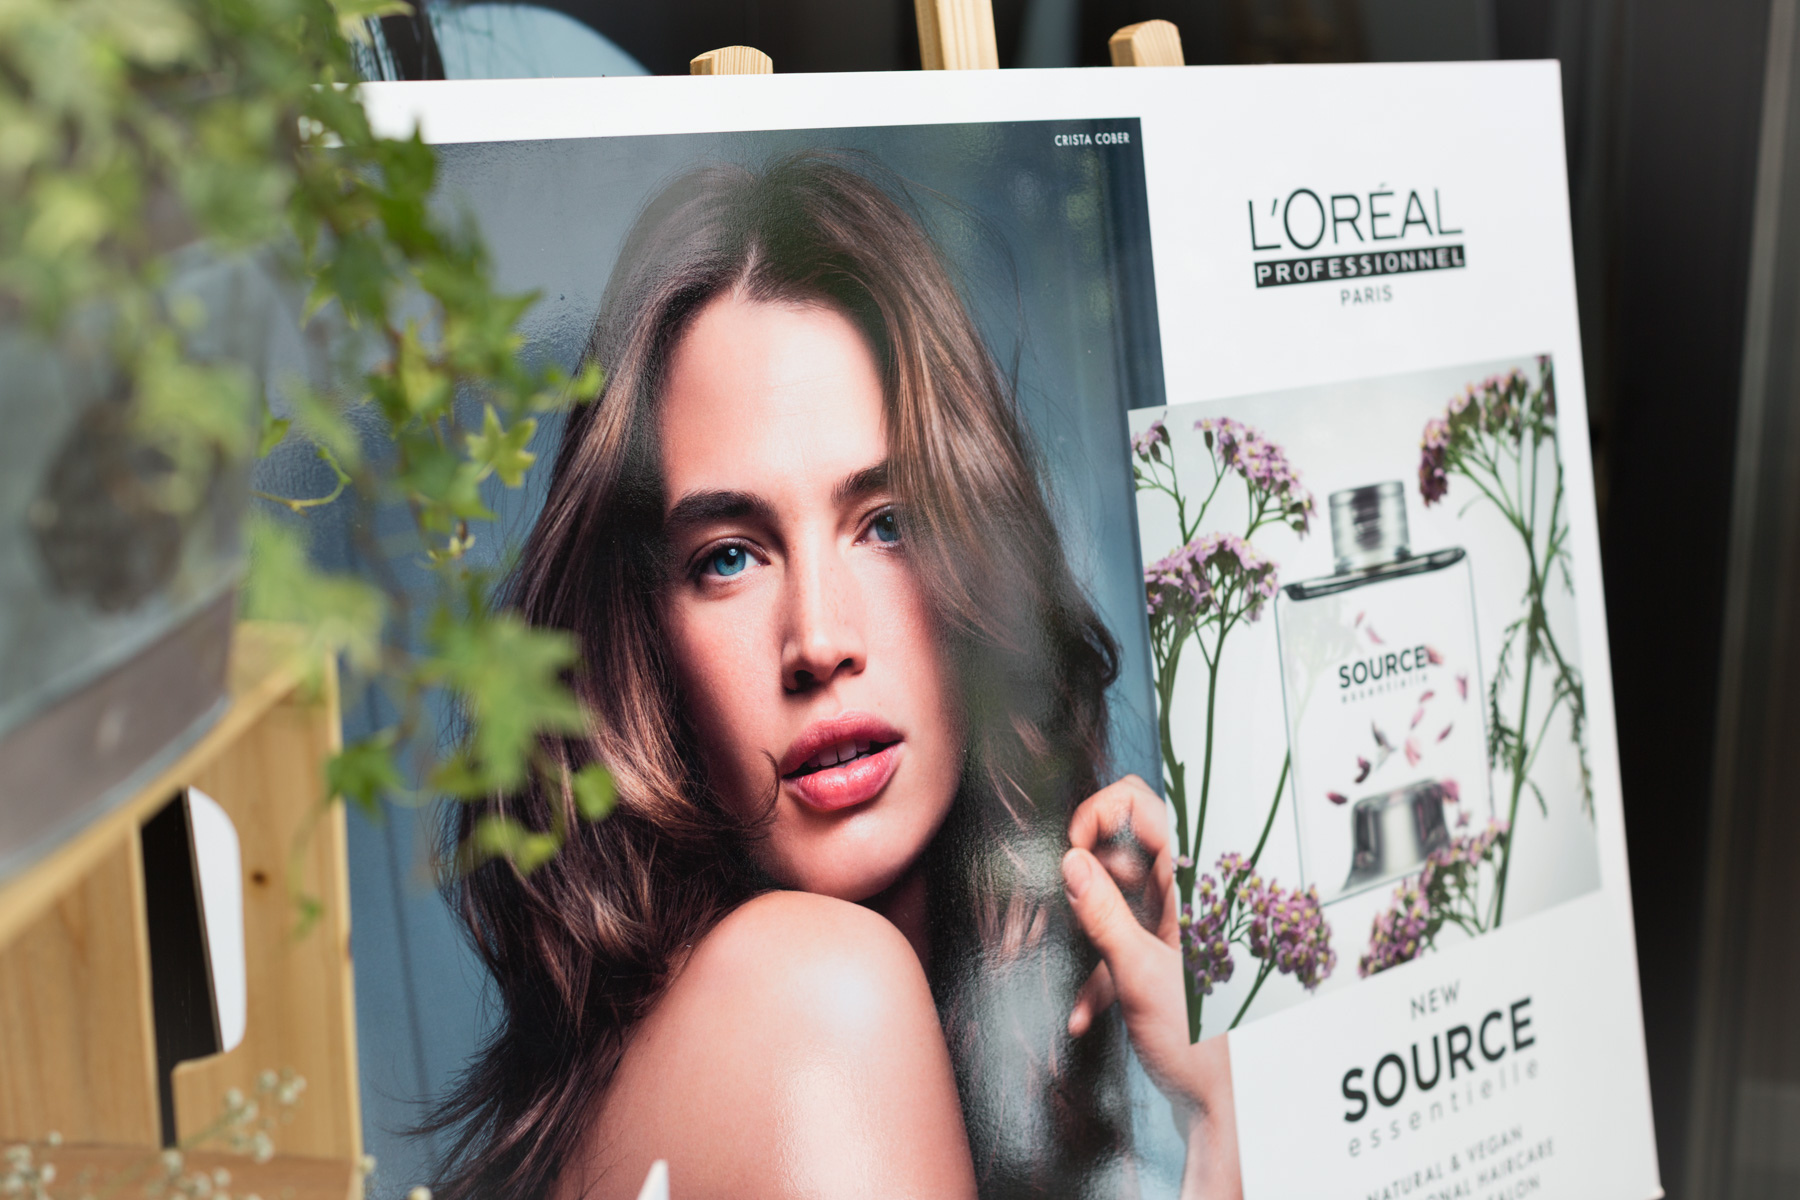 L'Oreal Paris Source Essentielle products presentation by Loesje Kessels Event Photographer Dubai